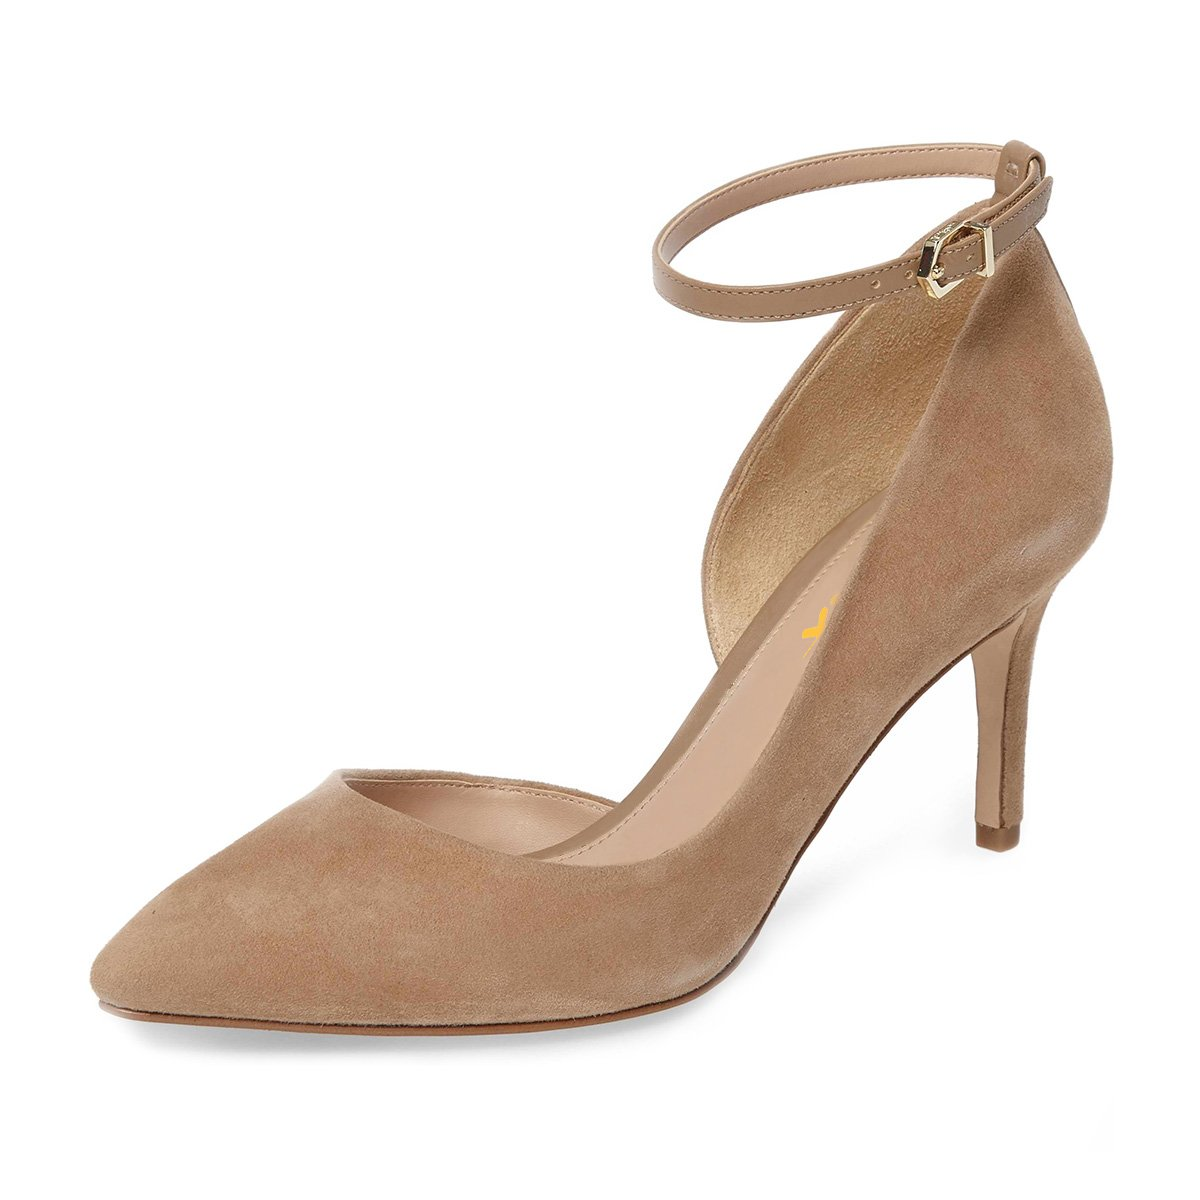 XYD Women Pointed Toe D'Orsay Mid Heel Pumps Ankle Strap Buckled Wedding Party Dress Shoes B078XQCKZQ 9 B(M) US|Camel